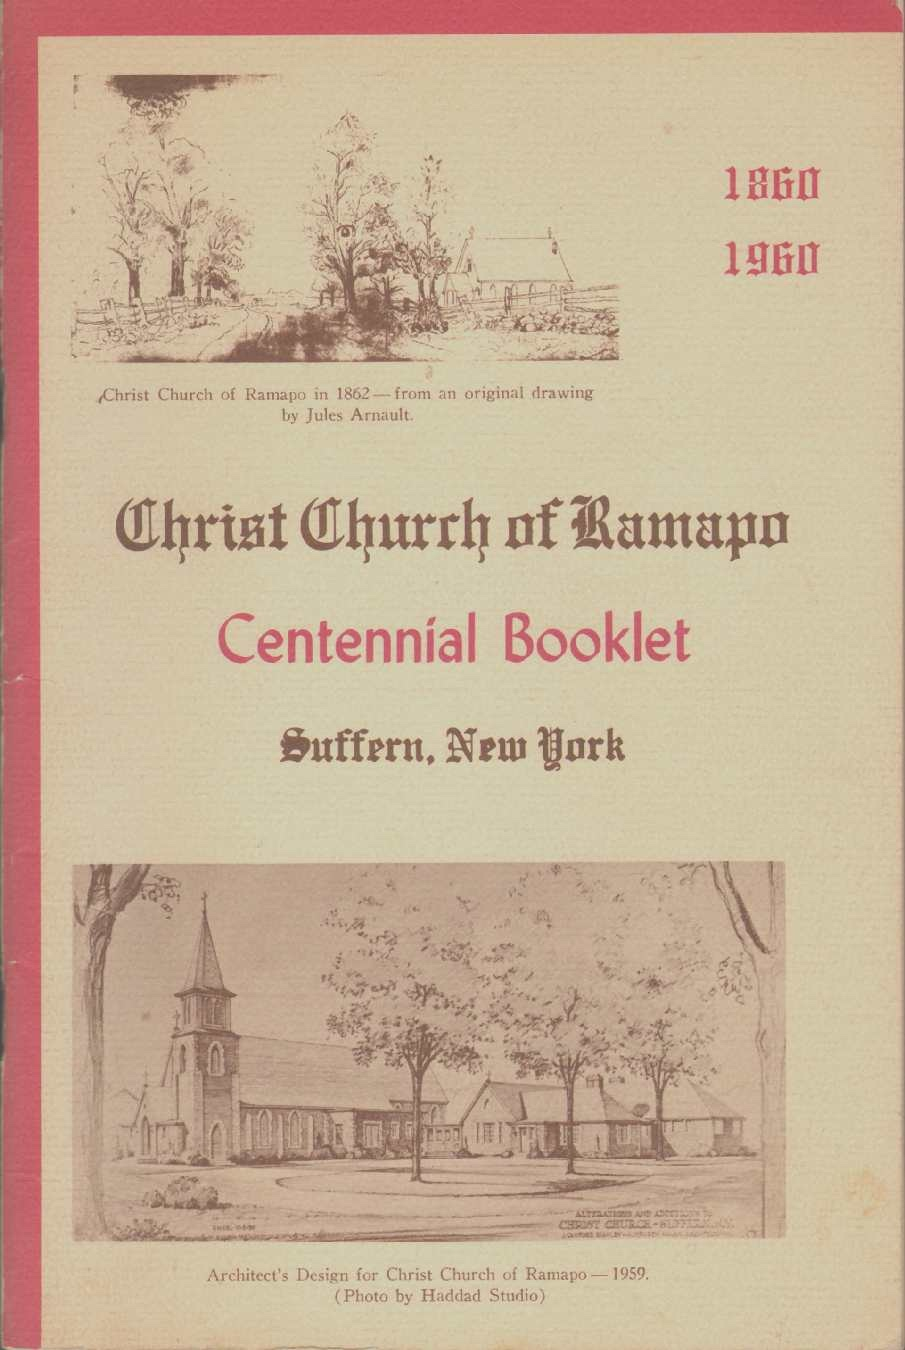 Image for CHRIST CHURCH OF RAMAPO Centennial Booklet Suffern, New York 1860 - 1960